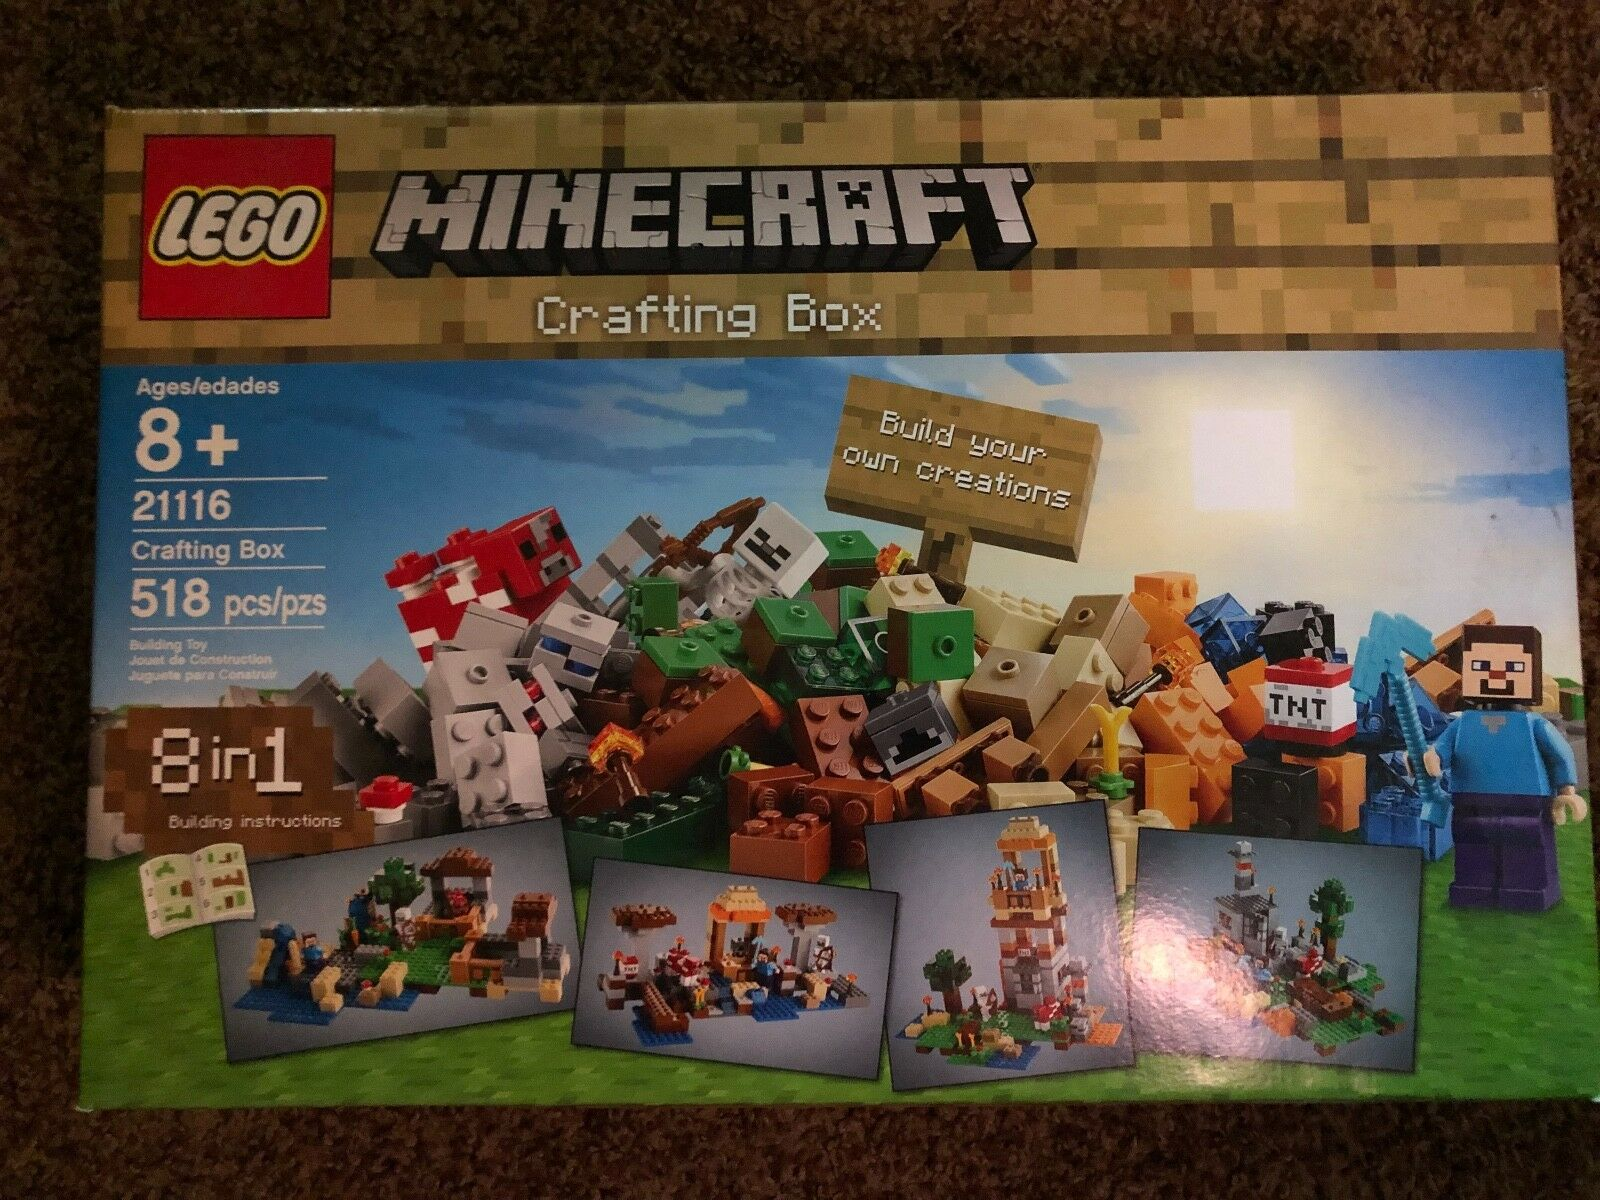 LEGO Minecraft Crafting Box (21116)